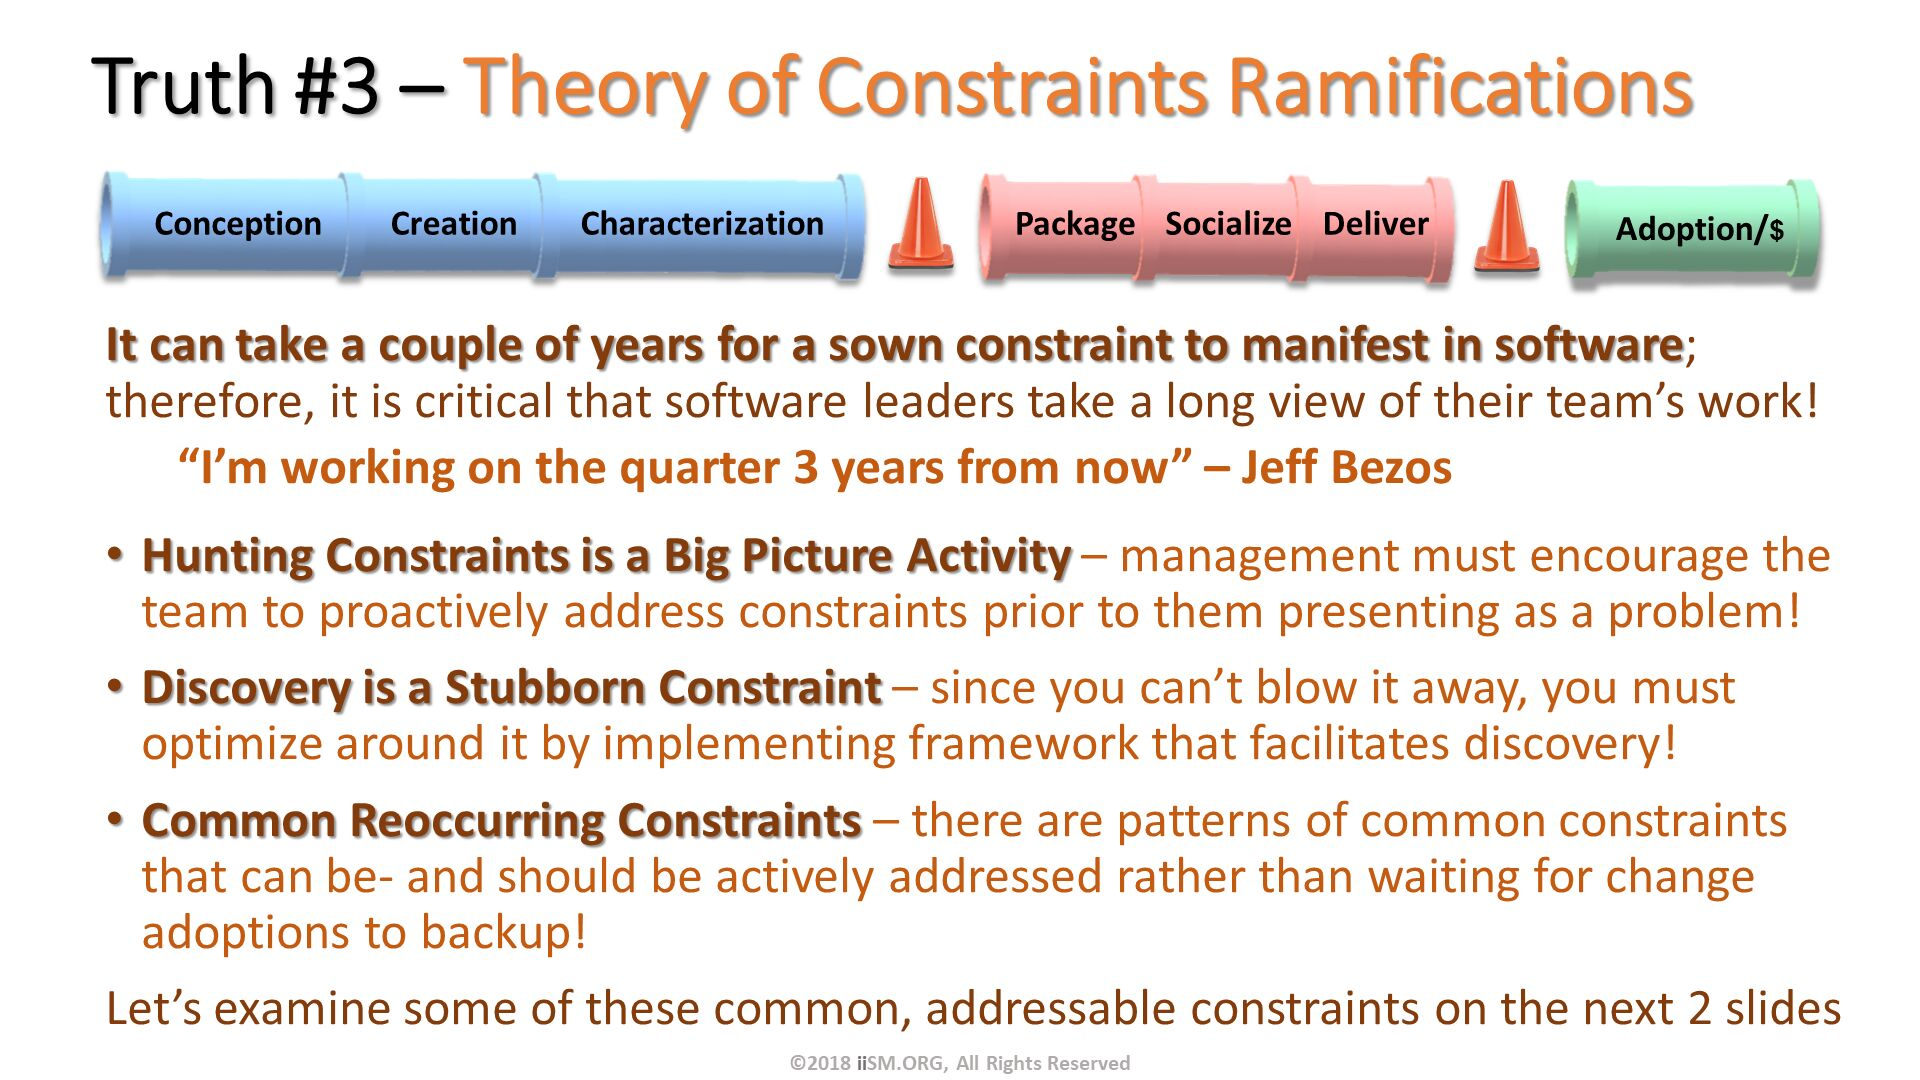 "Truth #3 – Theory of Constraints Ramifications . It can take a couple of years for a sown constraint to manifest in software; therefore, it is critical that software leaders take a long view of their team's work! ""I'm working on the quarter 3 years from now"" – Jeff Bezos Hunting Constraints is a Big Picture Activity – management must encourage the team to proactively address constraints prior to them presenting as a problem! Discovery is a Stubborn Constraint – since you can't blow it away, you must optimize around it by implementing framework that facilitates discovery! Common Reoccurring Constraints – there are patterns of common constraints that can be- and should be actively addressed rather than waiting for change adoptions to backup! Let's examine some of these common, addressable constraints on the next 2 slides     . ©2018 iiSM.ORG, All Rights Reserved."